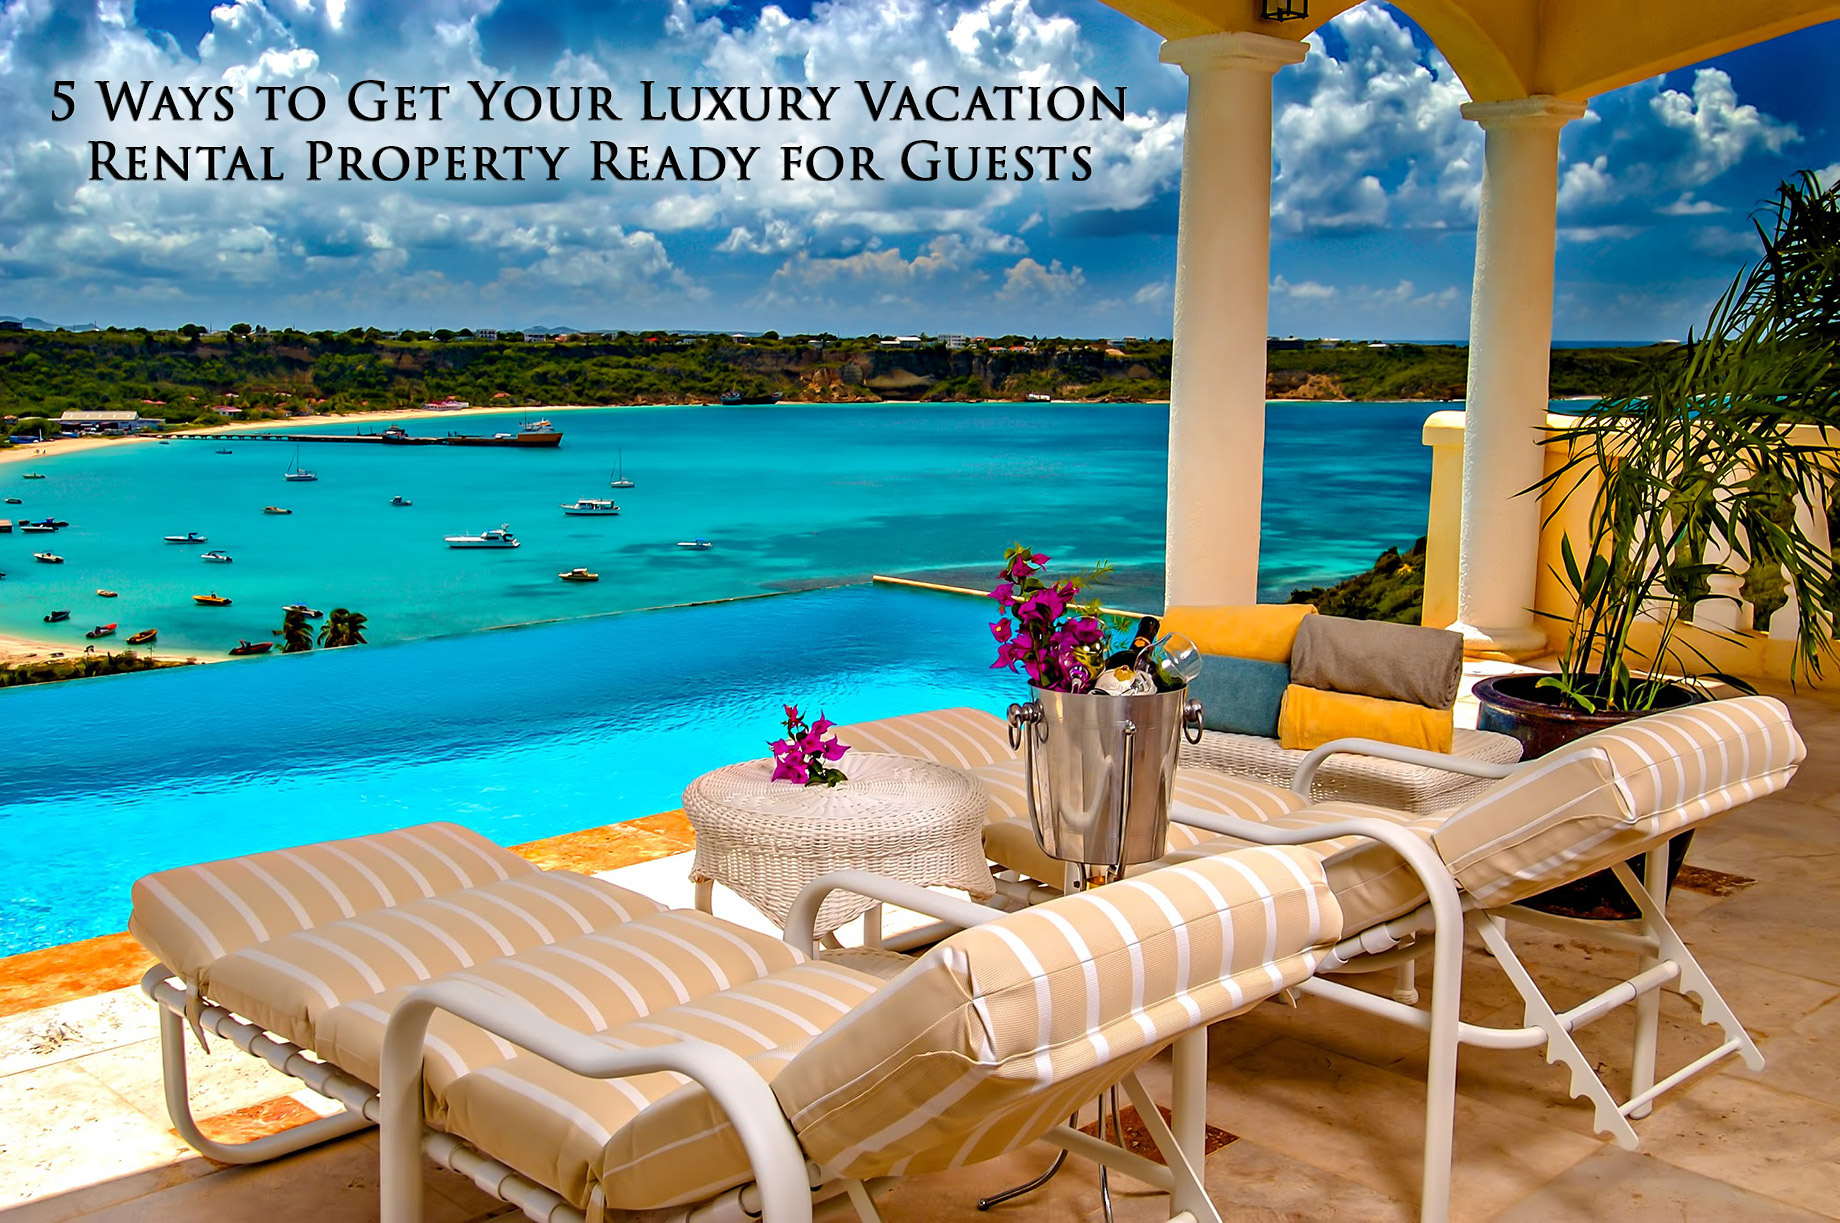 Above and Beyond – 5 Ways to Get Your Luxury Vacation Rental Property Ready for Guests